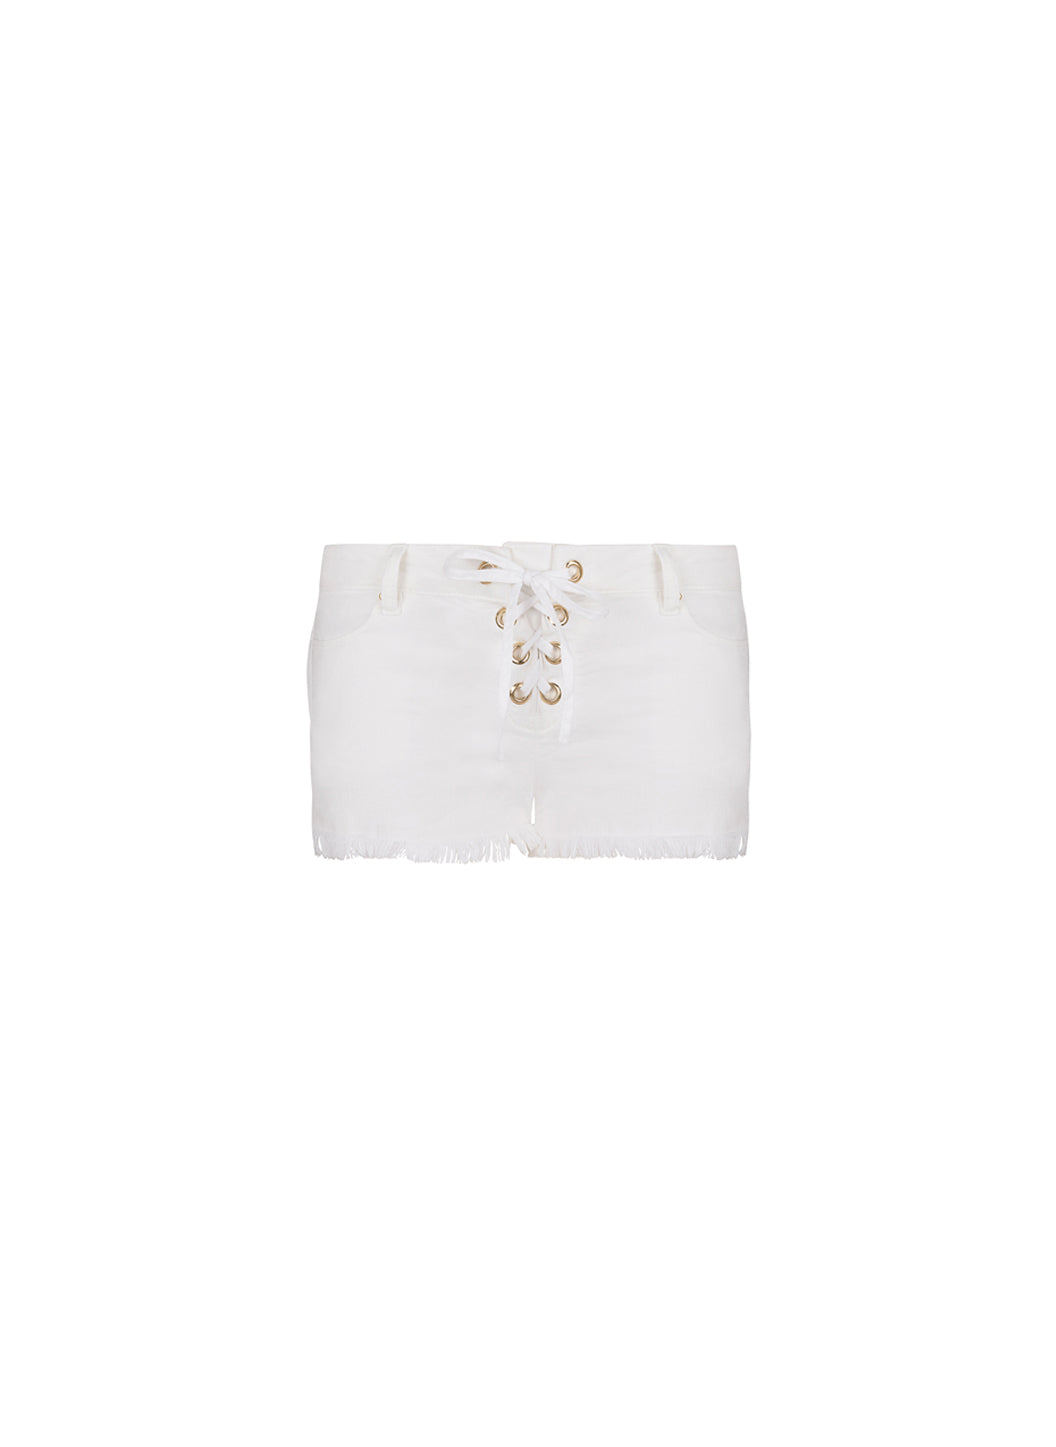 Alexi White Denim Lace-Up Shorts - Melissa Odabash Tops & Bottoms